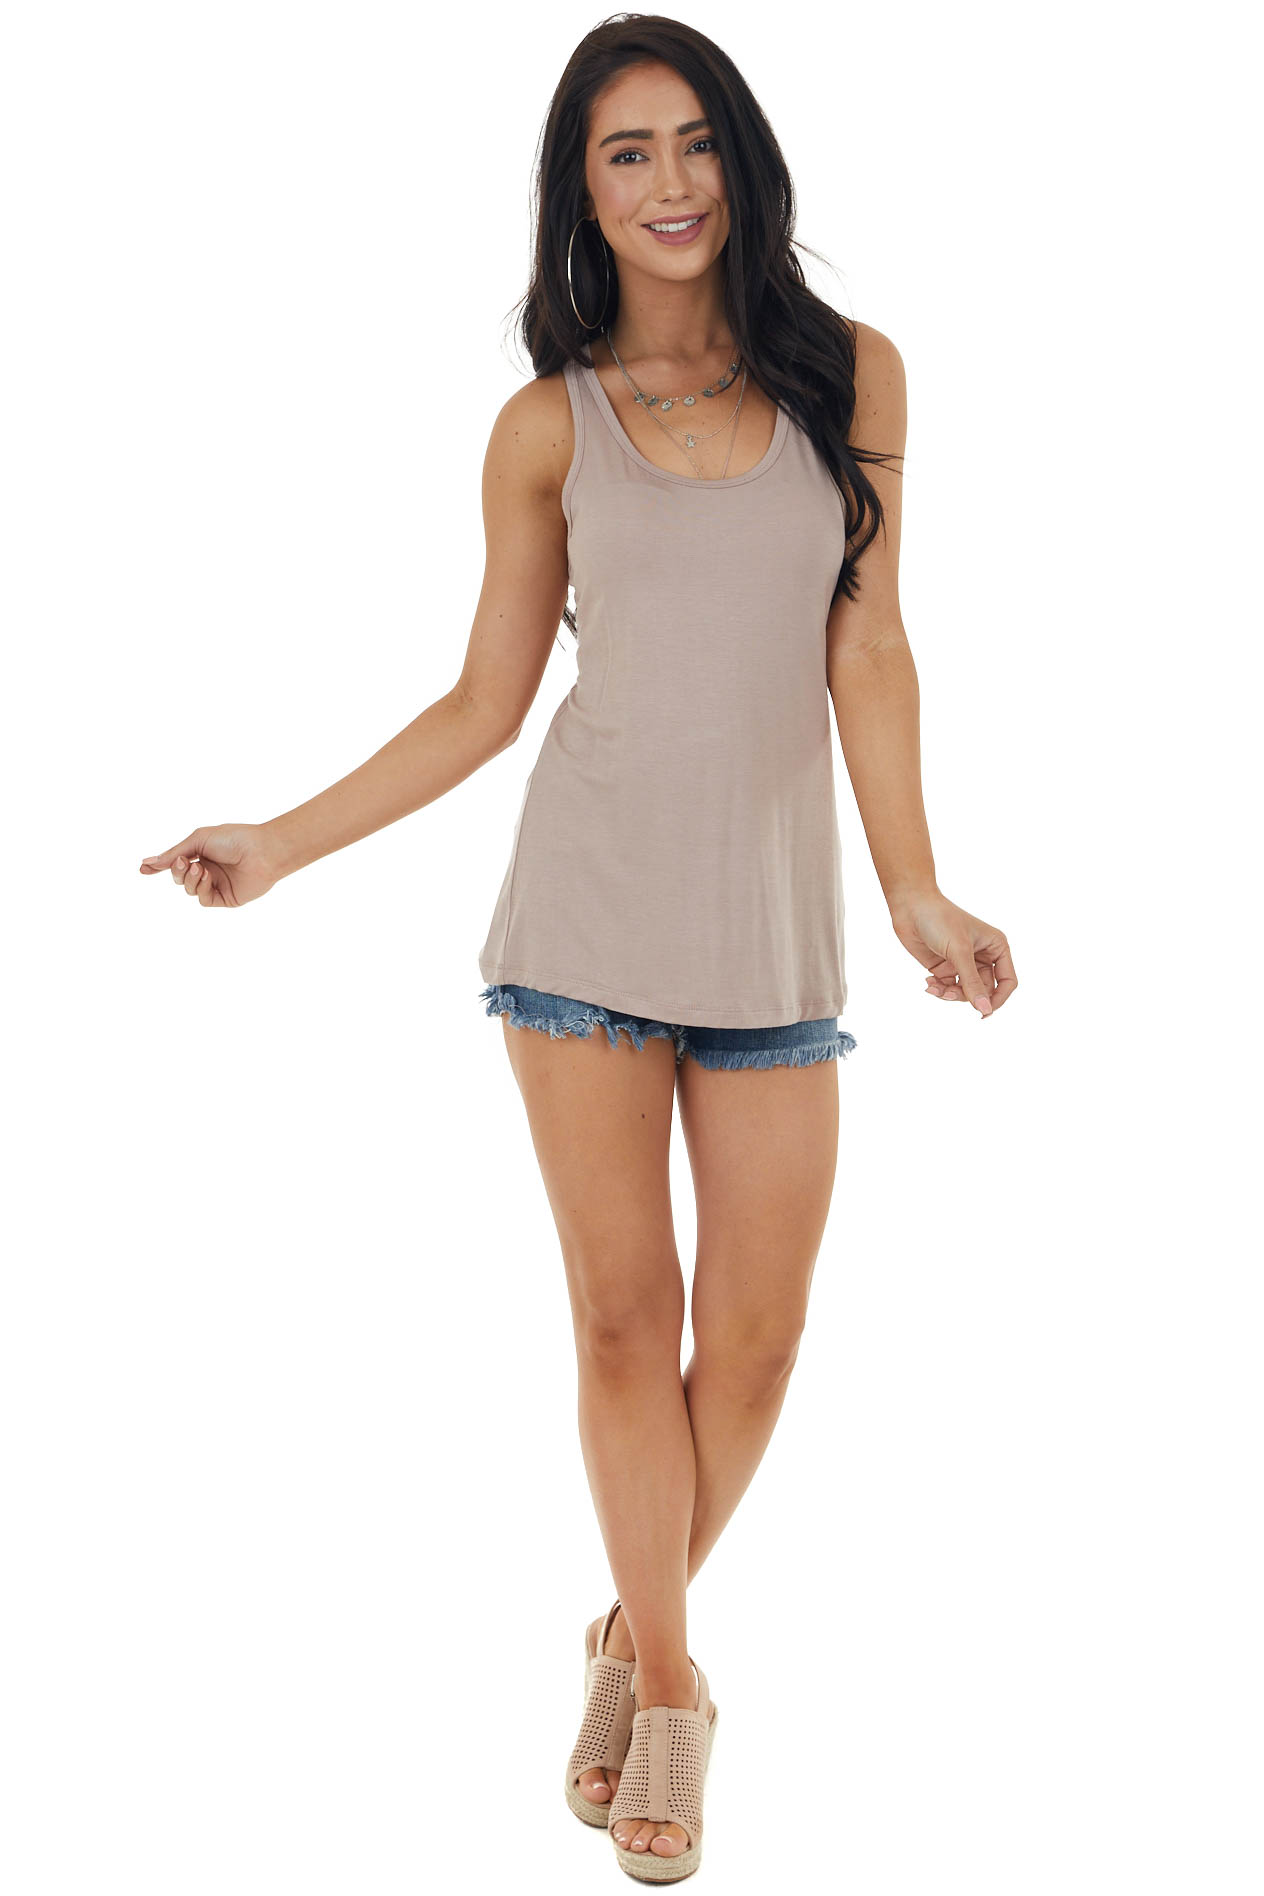 Light Rose Taupe Soft Stretchy Knit Tank Top with Racerback